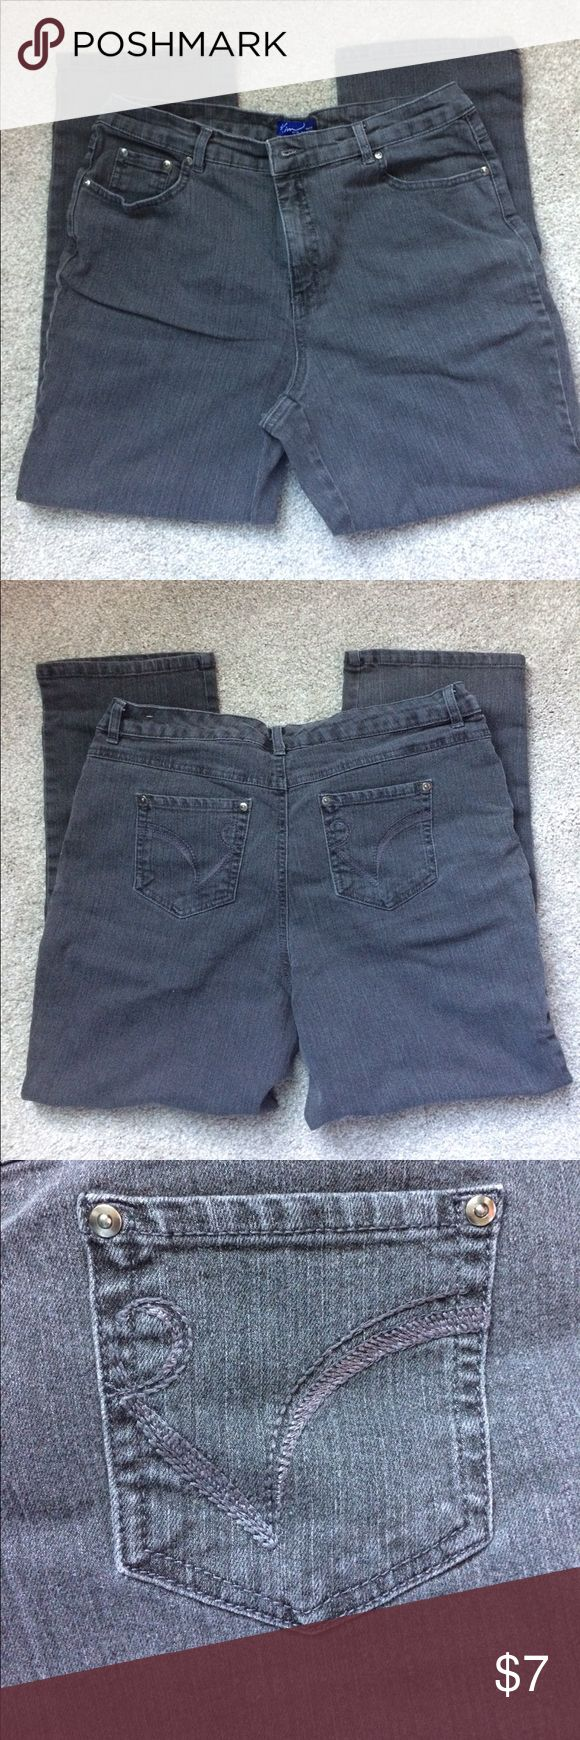 """👖 ladies Kim Rogers petite jeans 👖 EUC Kim Rogers straight leg jeans.  One flaw noted in last picture.  Color is blackish gray.  Size is 12 petite short.  Length is 36"""", inseam is 26"""" and leg opening is 8"""".  80% cotton 16% polyester 2% spandex Kim Rogers Jeans Straight Leg"""